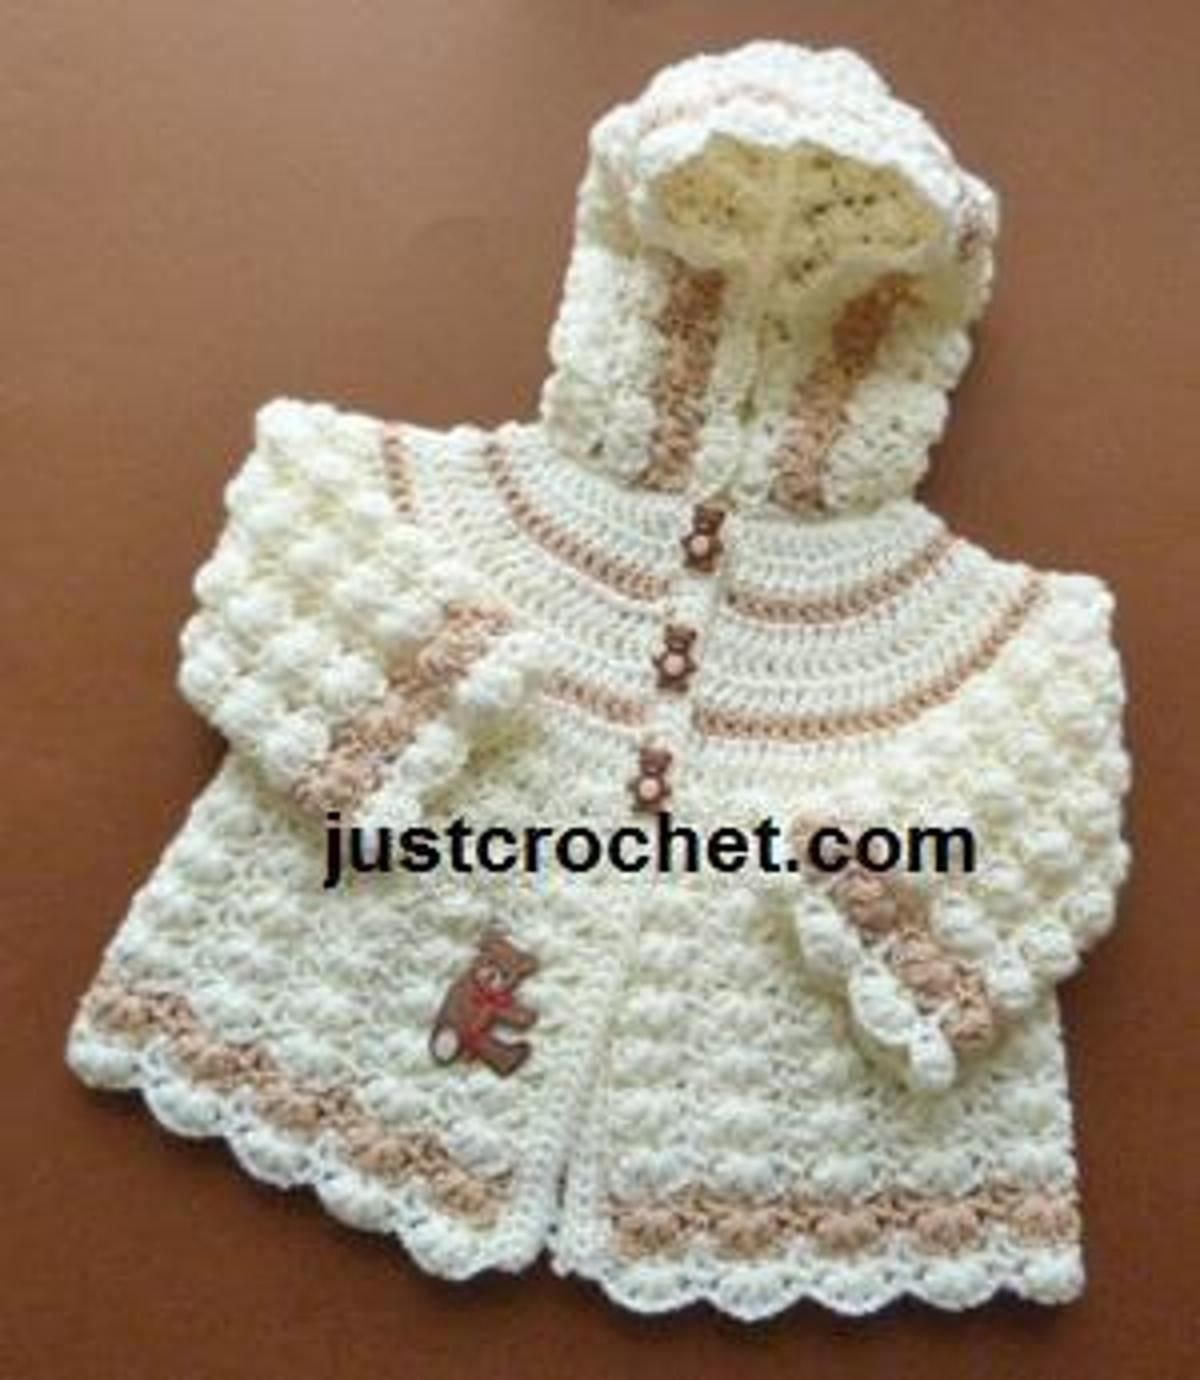 FJC99-Hooded Jacket baby crochet pattern | Craftsy | Projects to Try ...